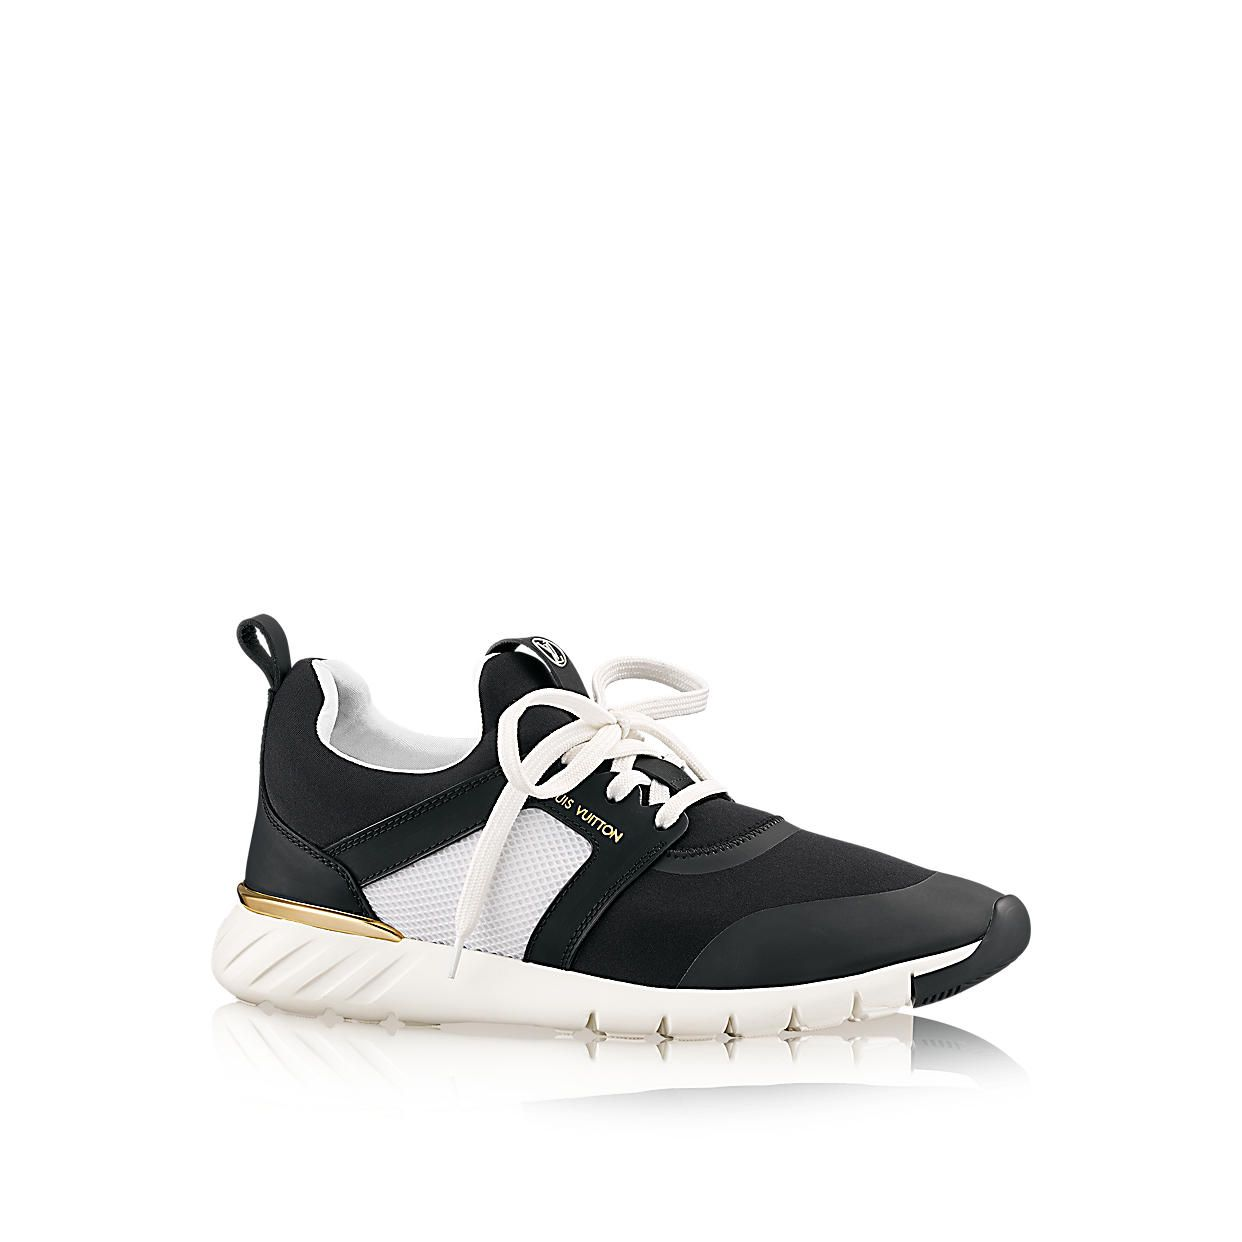 e328ad5340ef Aftergame Sneaker in WOMEN s SHOES collections by Louis Vuitton ...